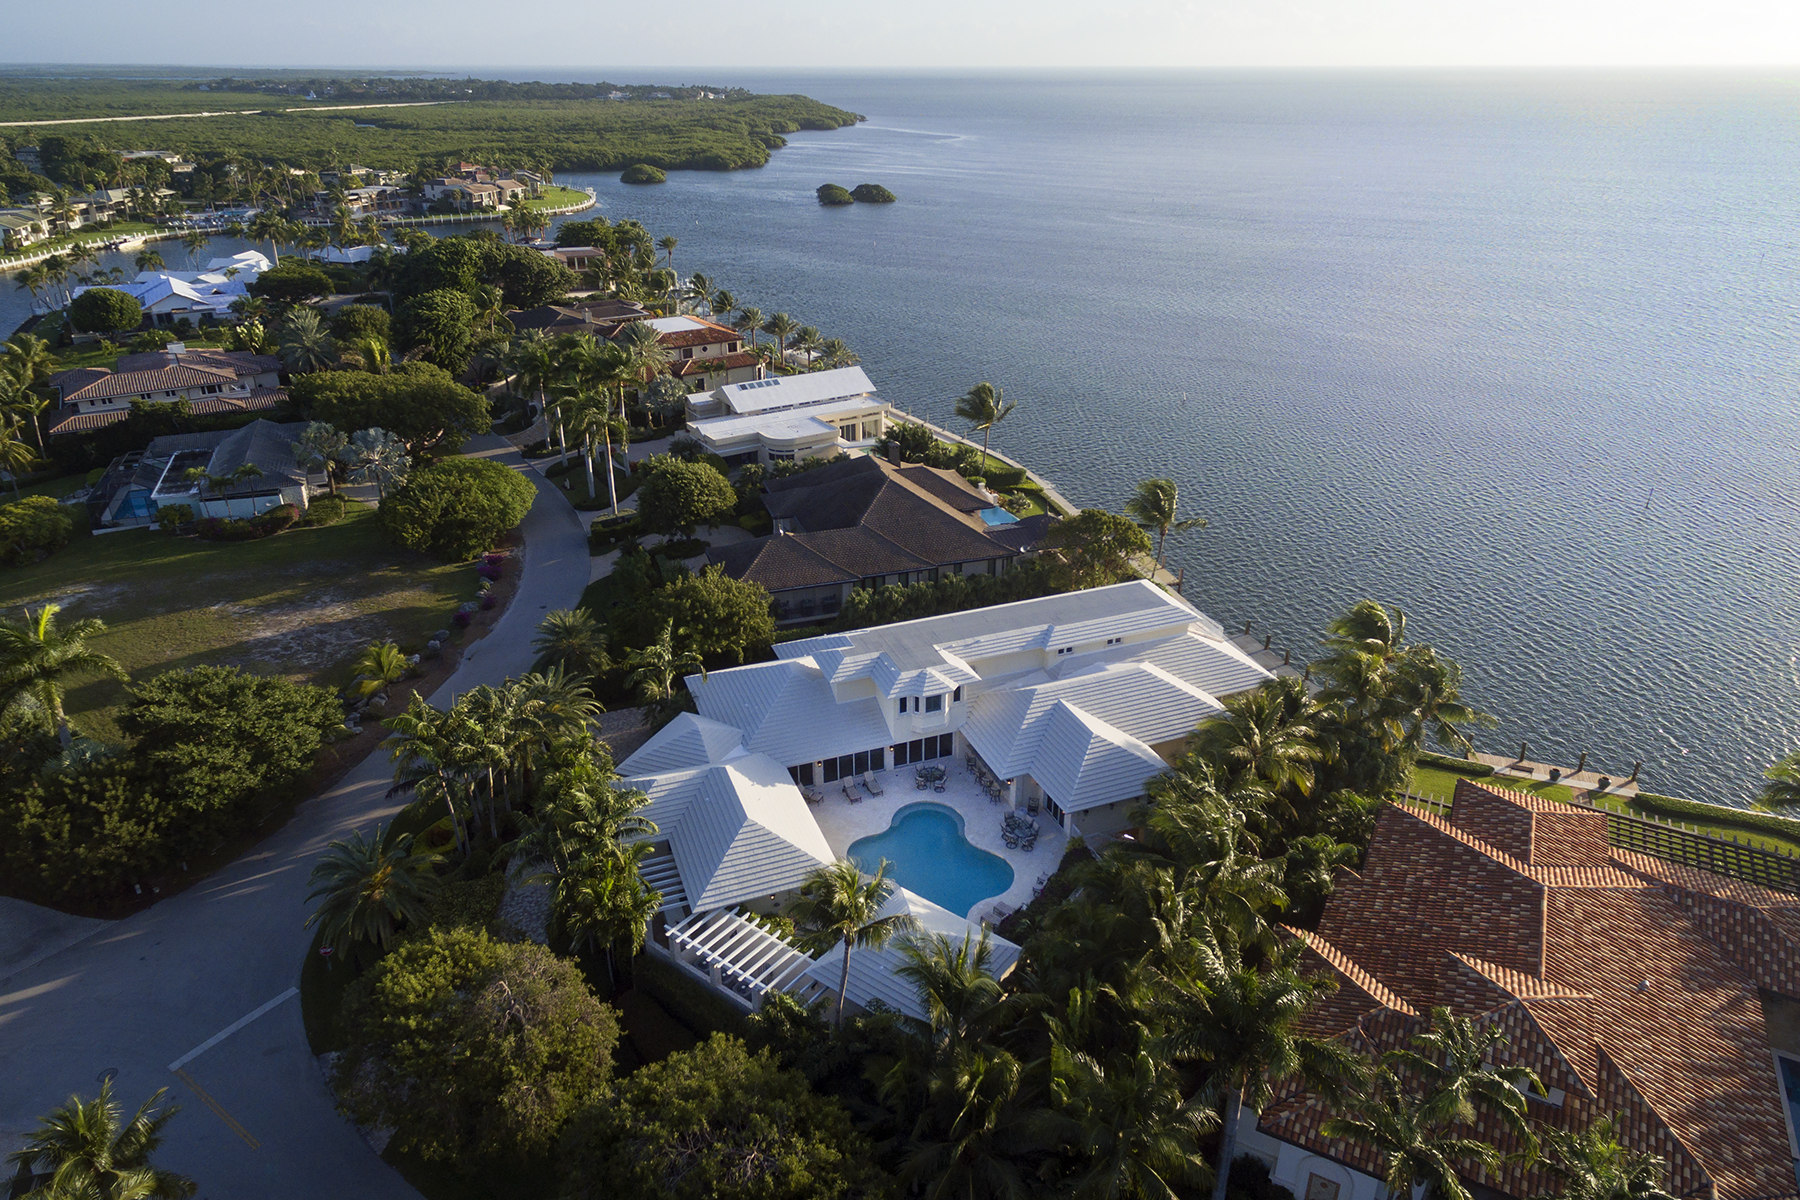 Villa per Vendita alle ore Extraordinary Oceanfront Home at Ocean Reef 24 Angelfish Cay Drive, Ocean Reef Community, Key Largo, Florida, 33037 Stati Uniti